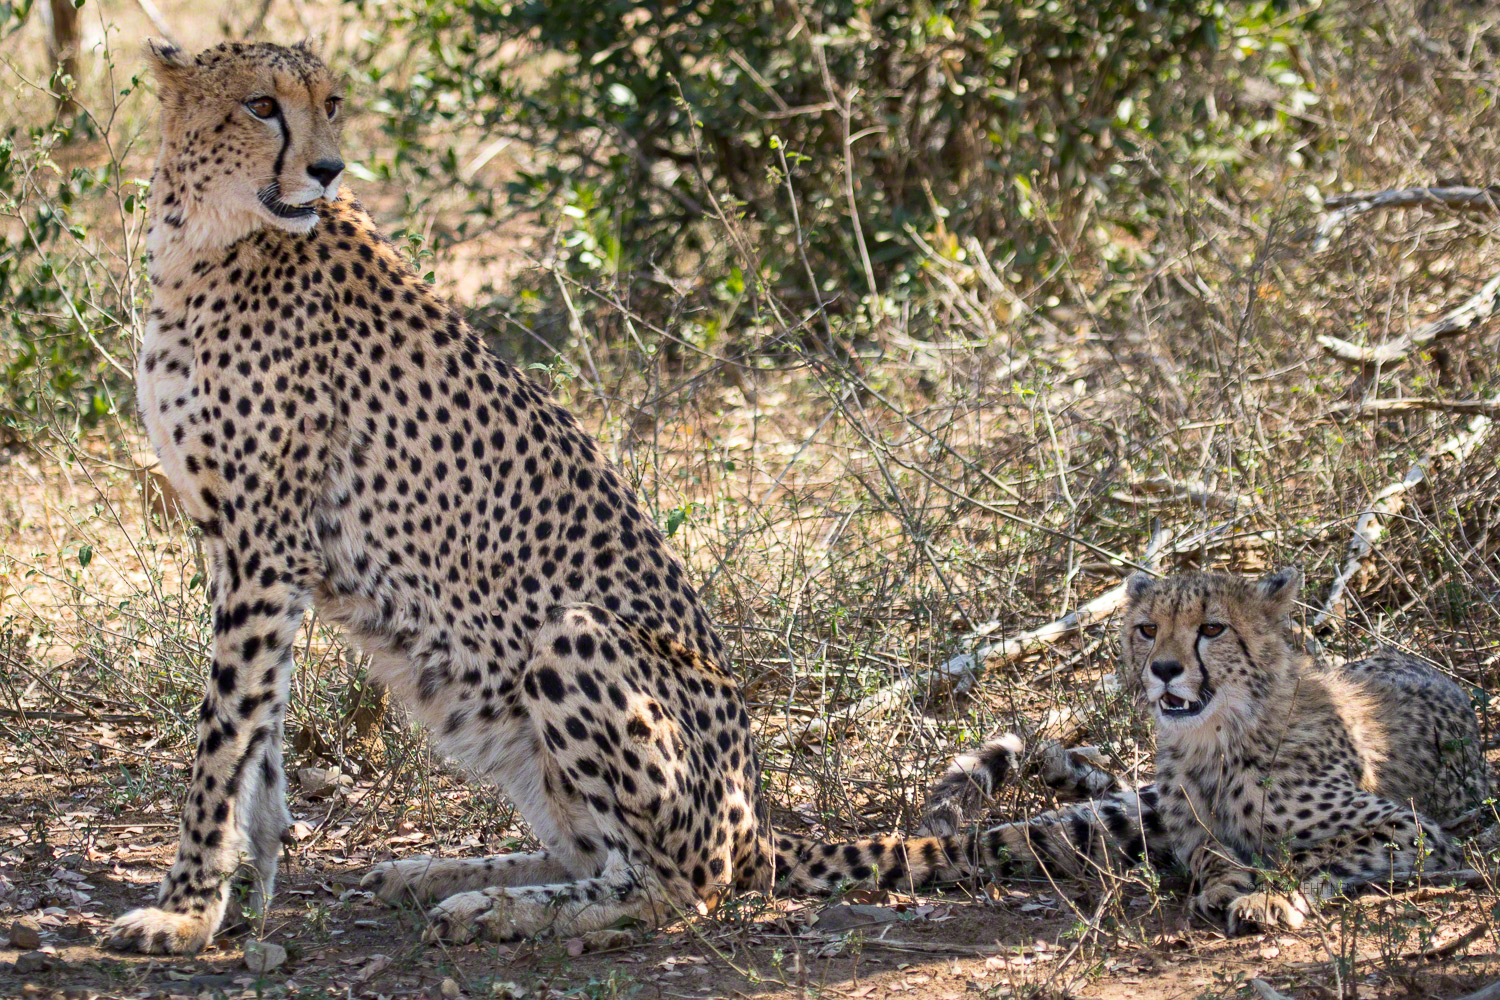 South Africa, cheetah with cub